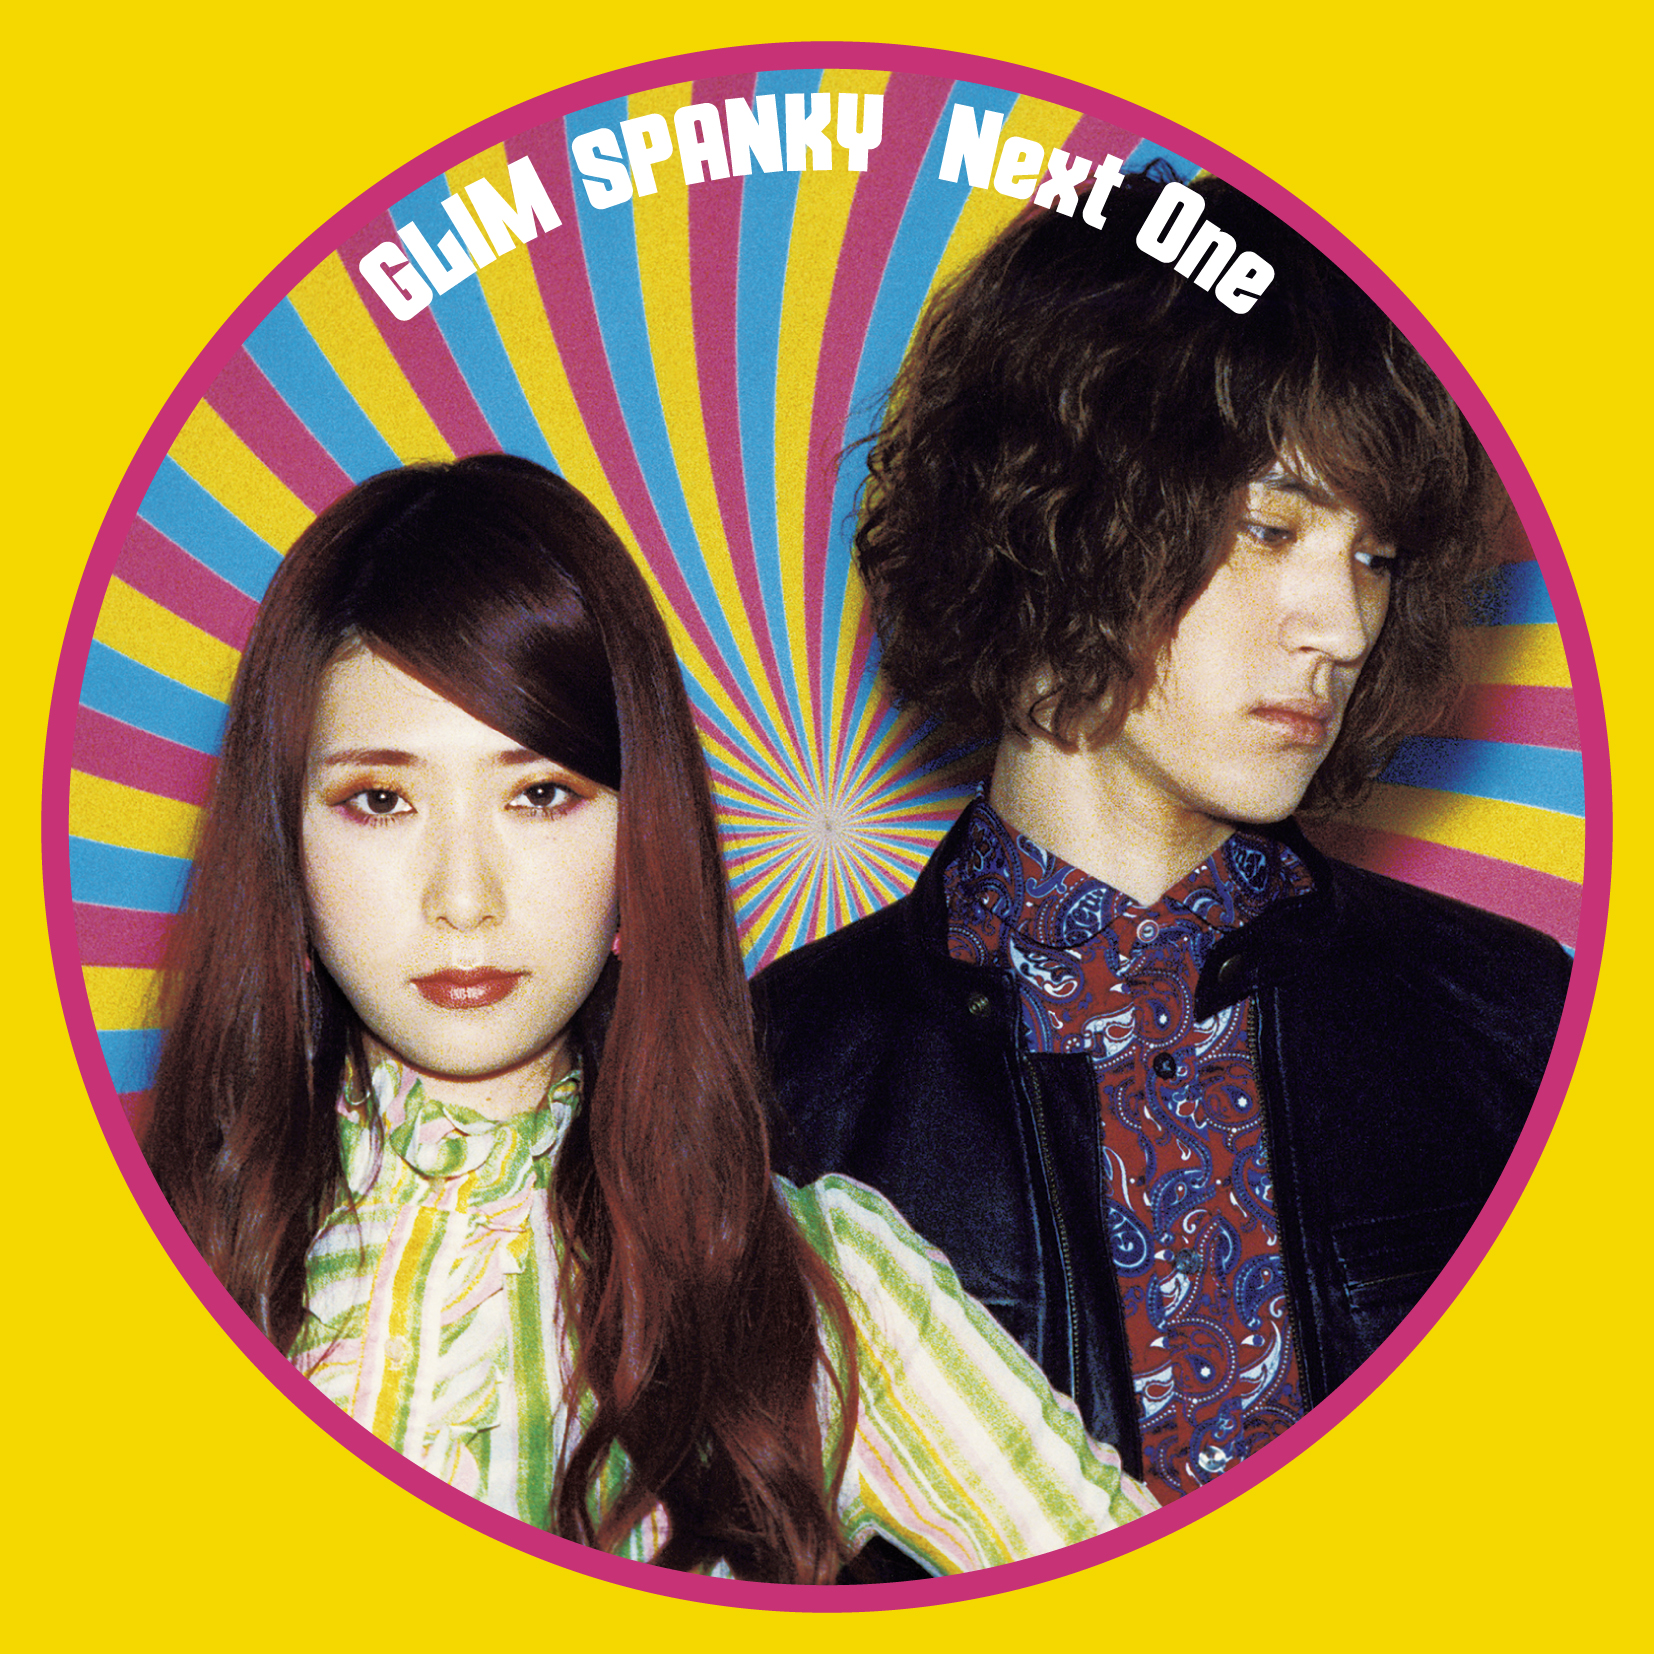 GLIM SPANKY 「Next One」